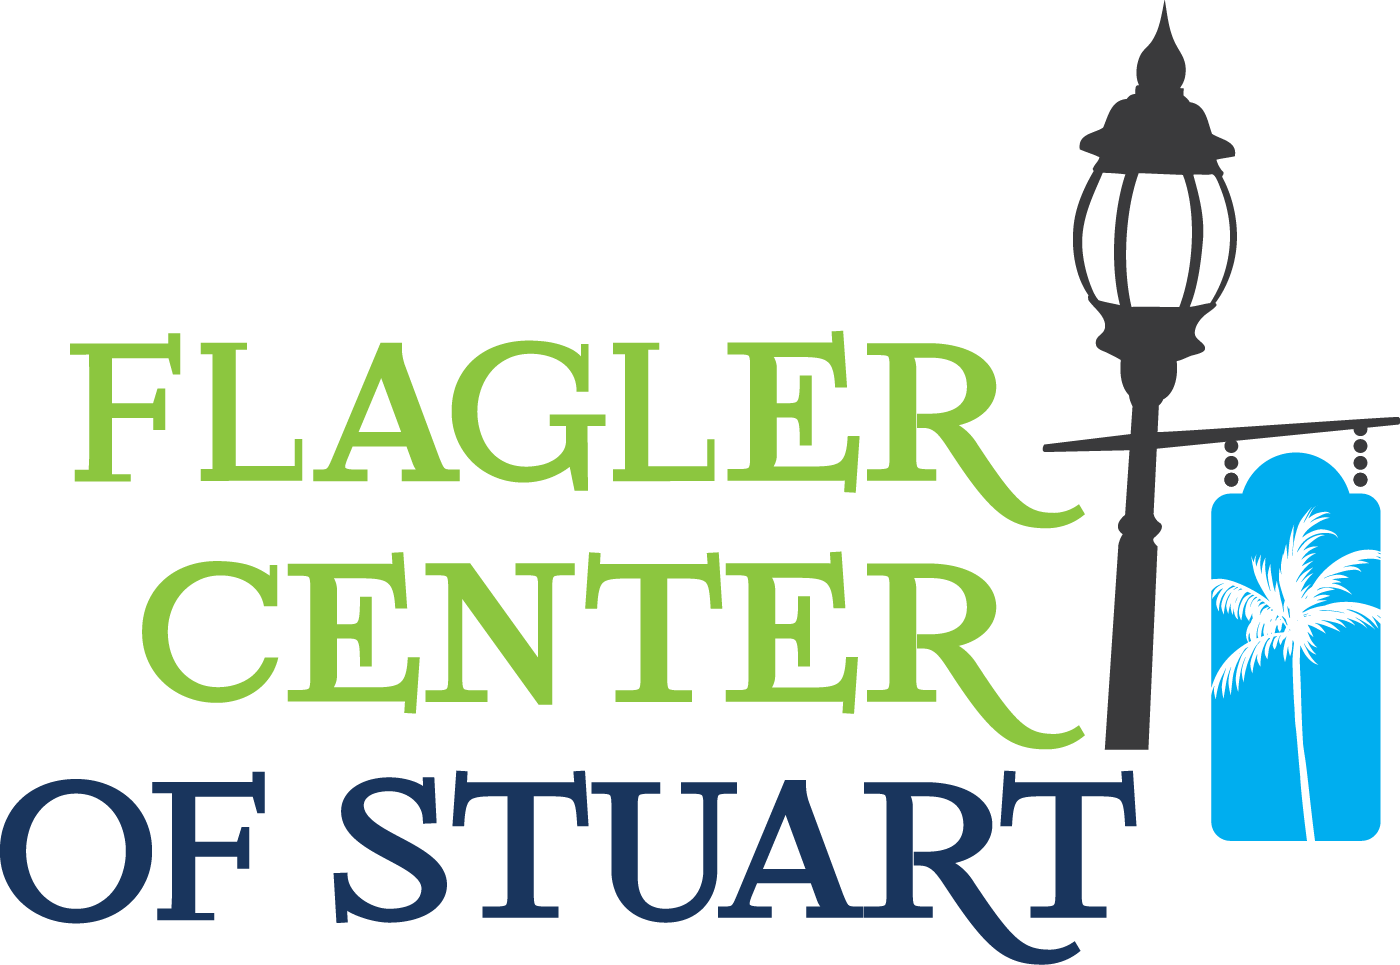 Flagler Center